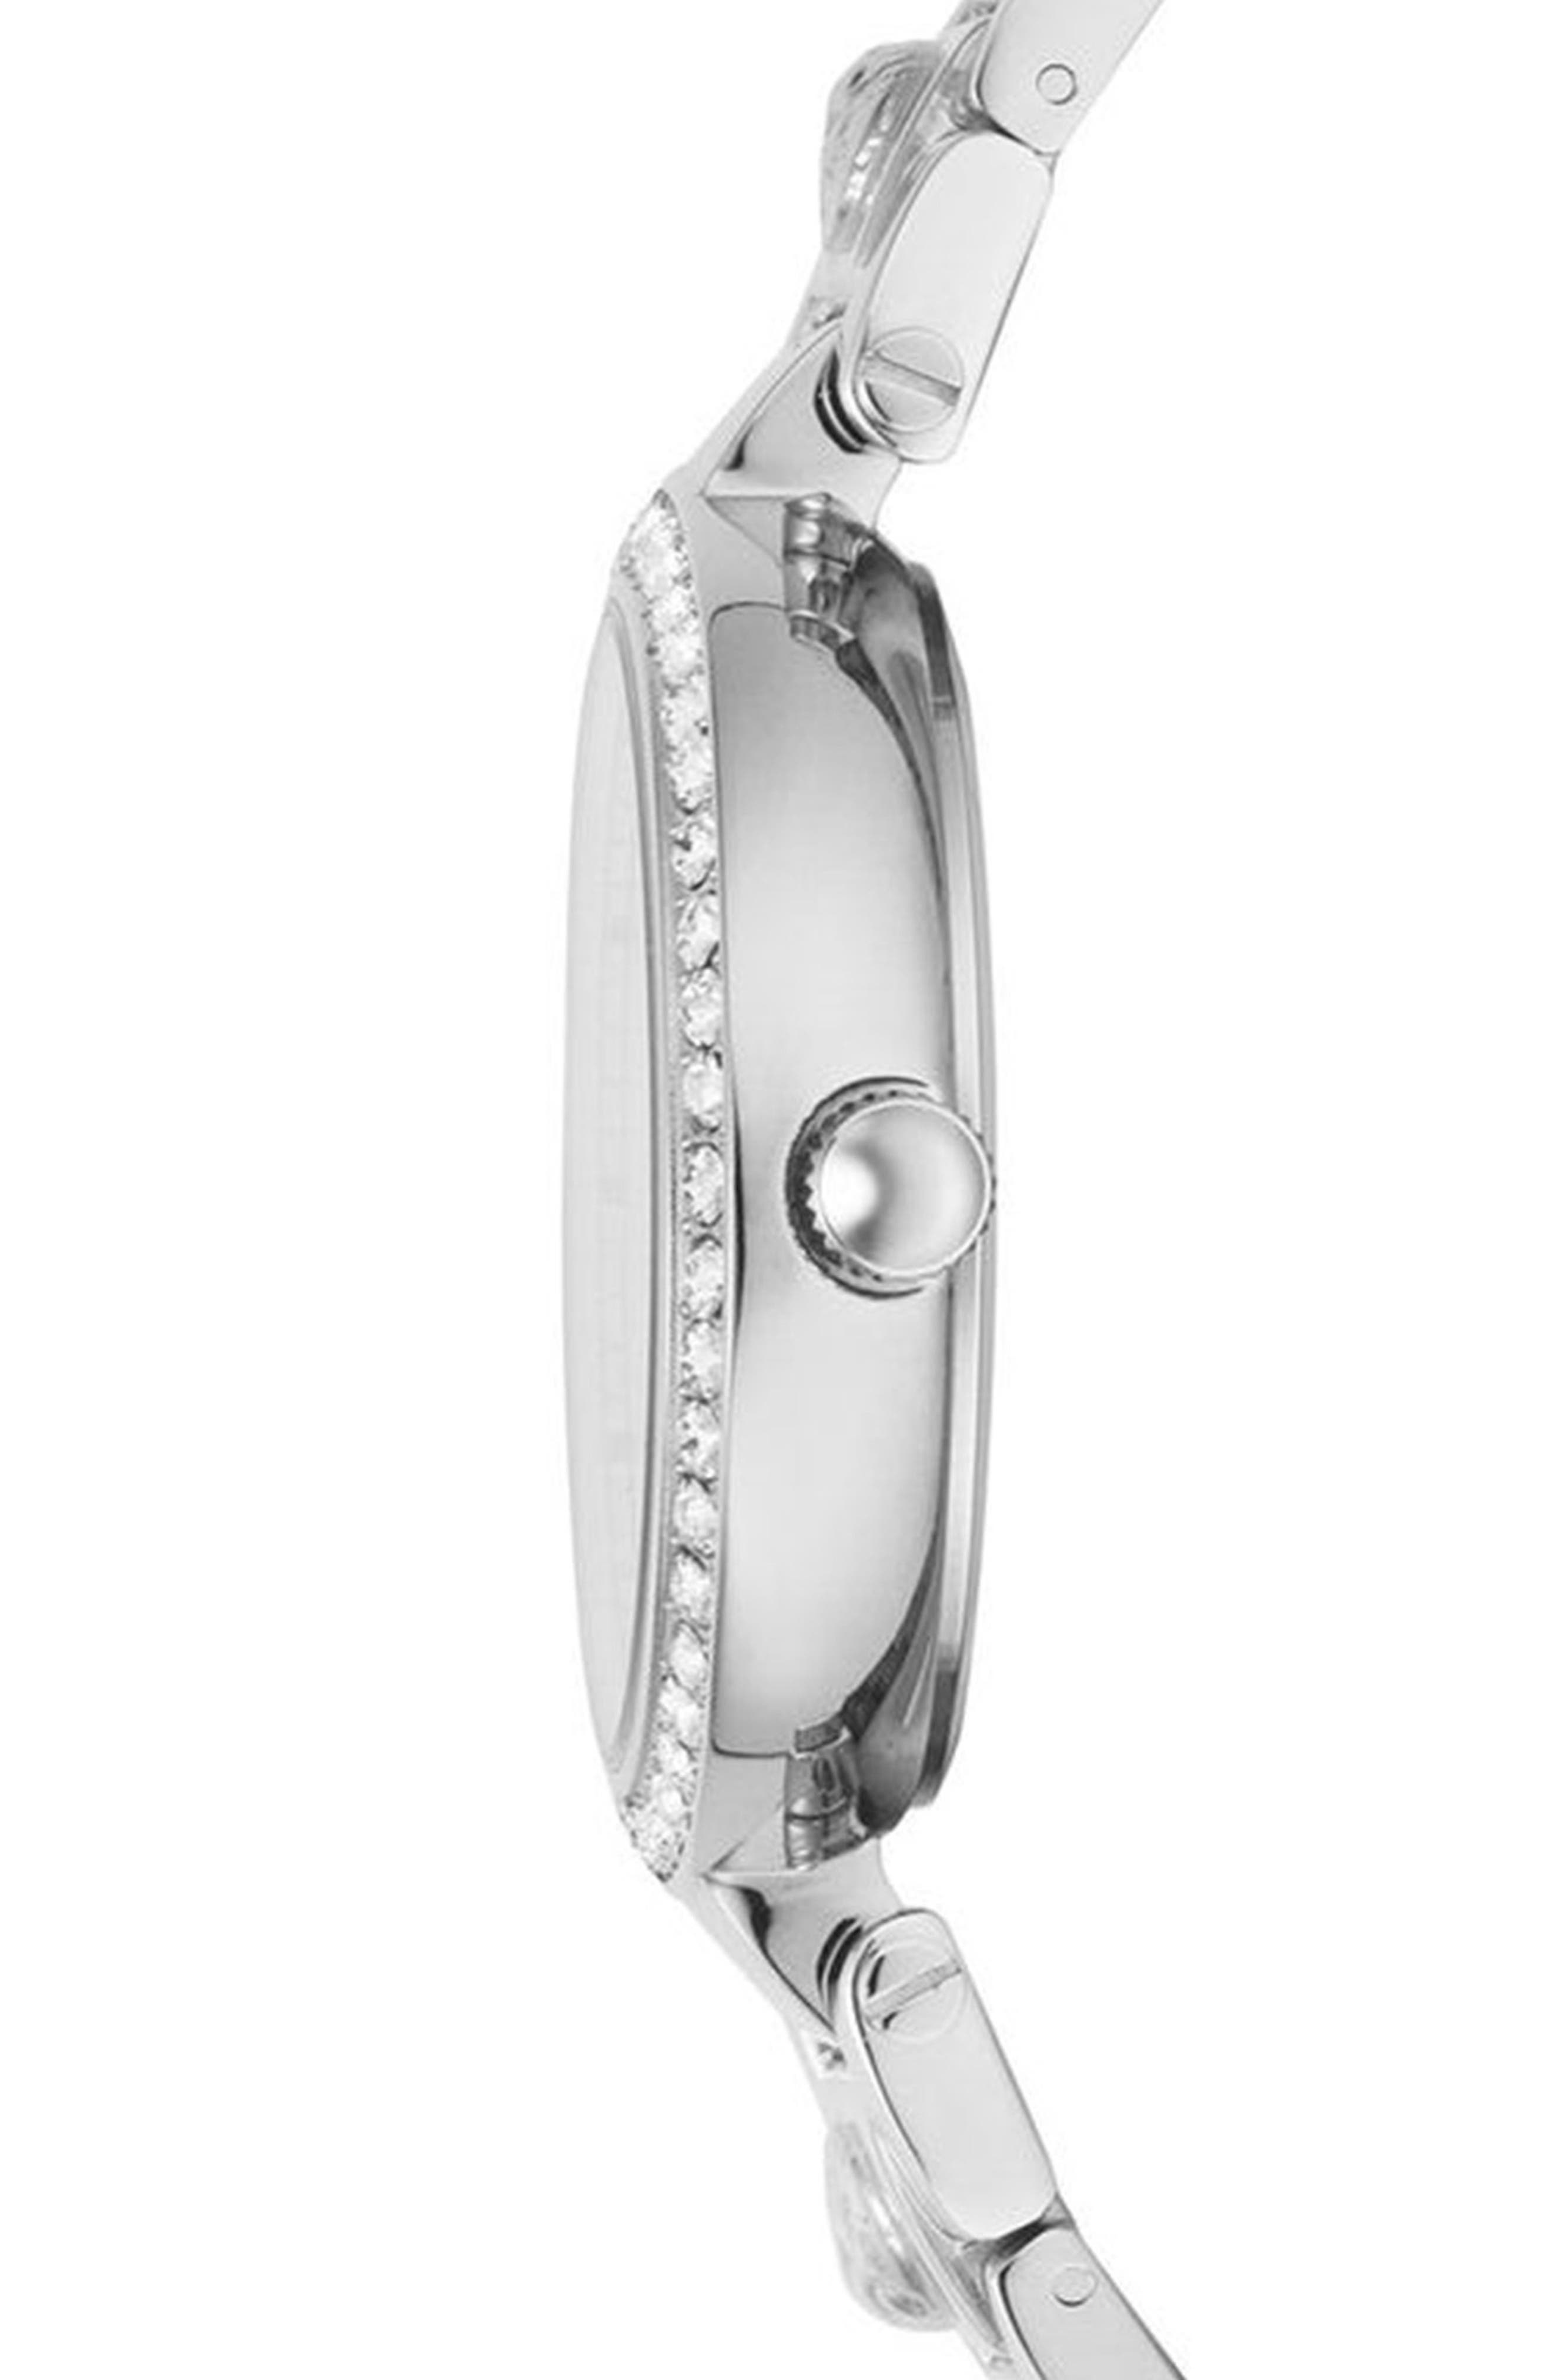 VERSUS VERSACE, Camden Market Multifunction Bracelet Watch, 38mm, Alternate thumbnail 2, color, SILVER